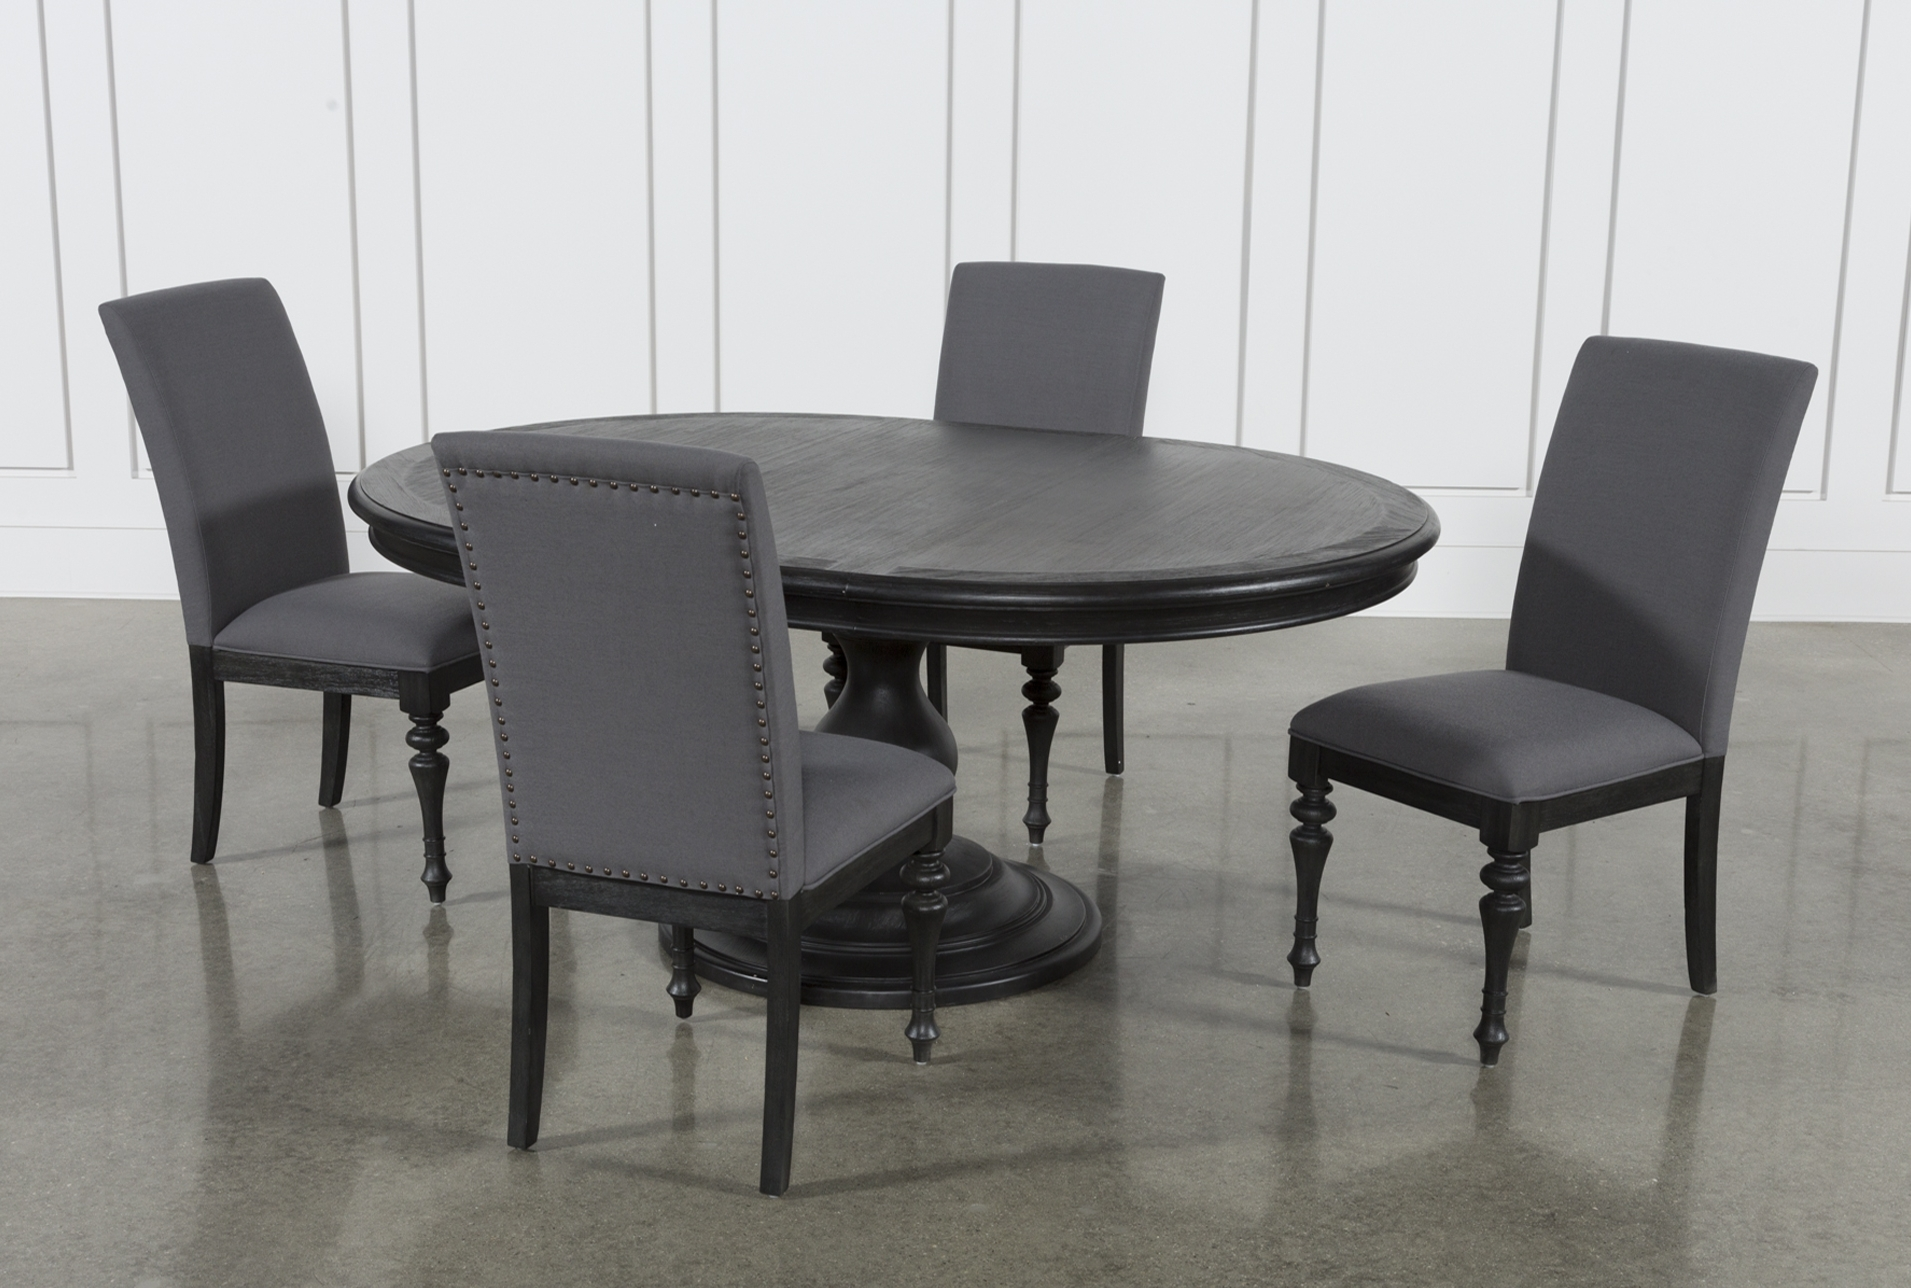 Preferred Caira Black 7 Piece Dining Sets With Upholstered Side Chairs Throughout Global Furniture Bar Table Black (View 8 of 25)